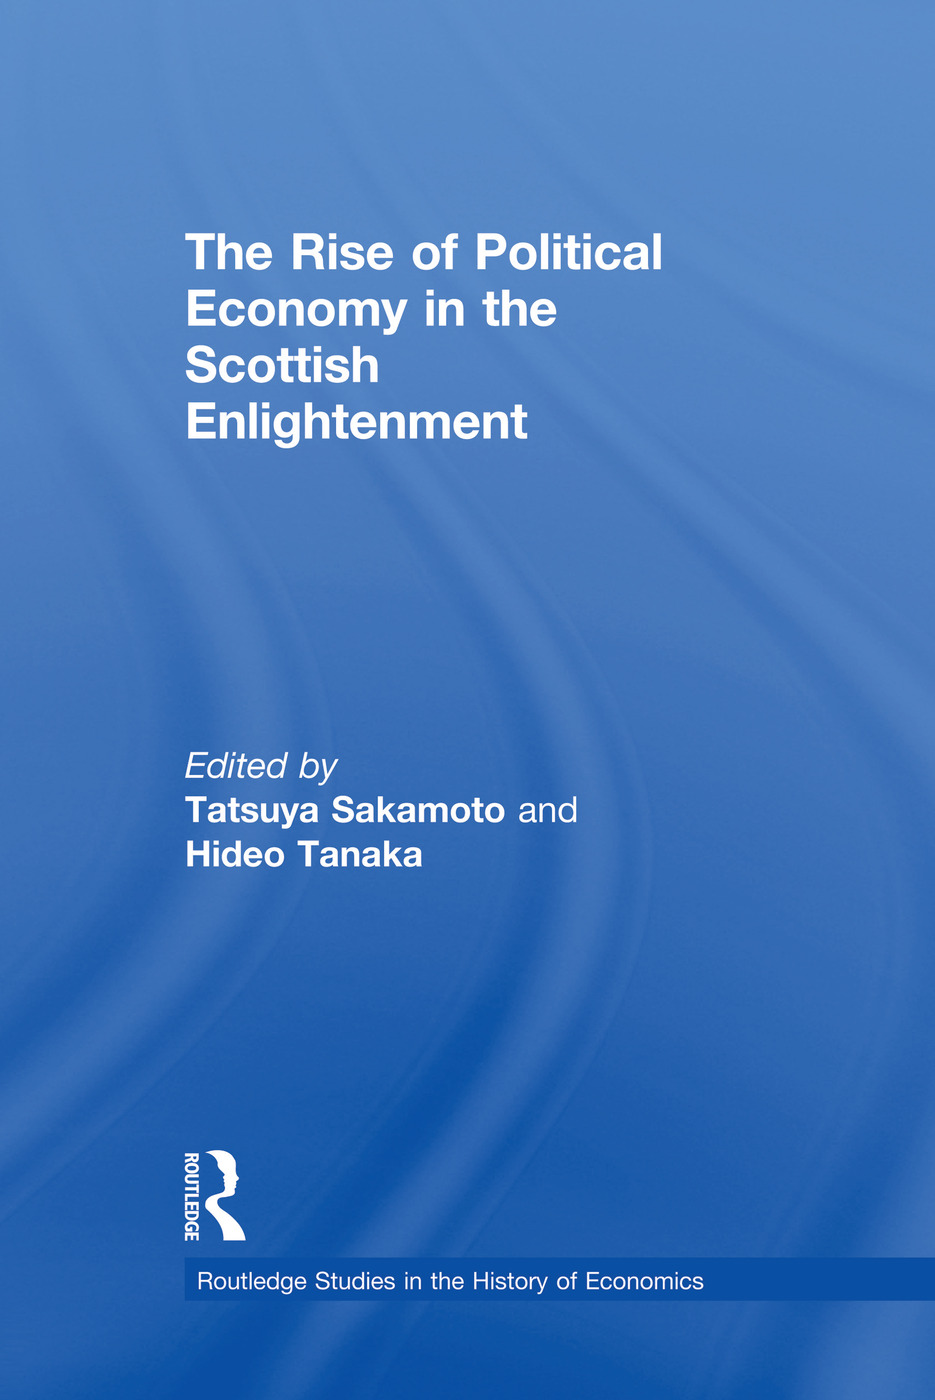 The Rise of Political Economy in the Scottish Enlightenment